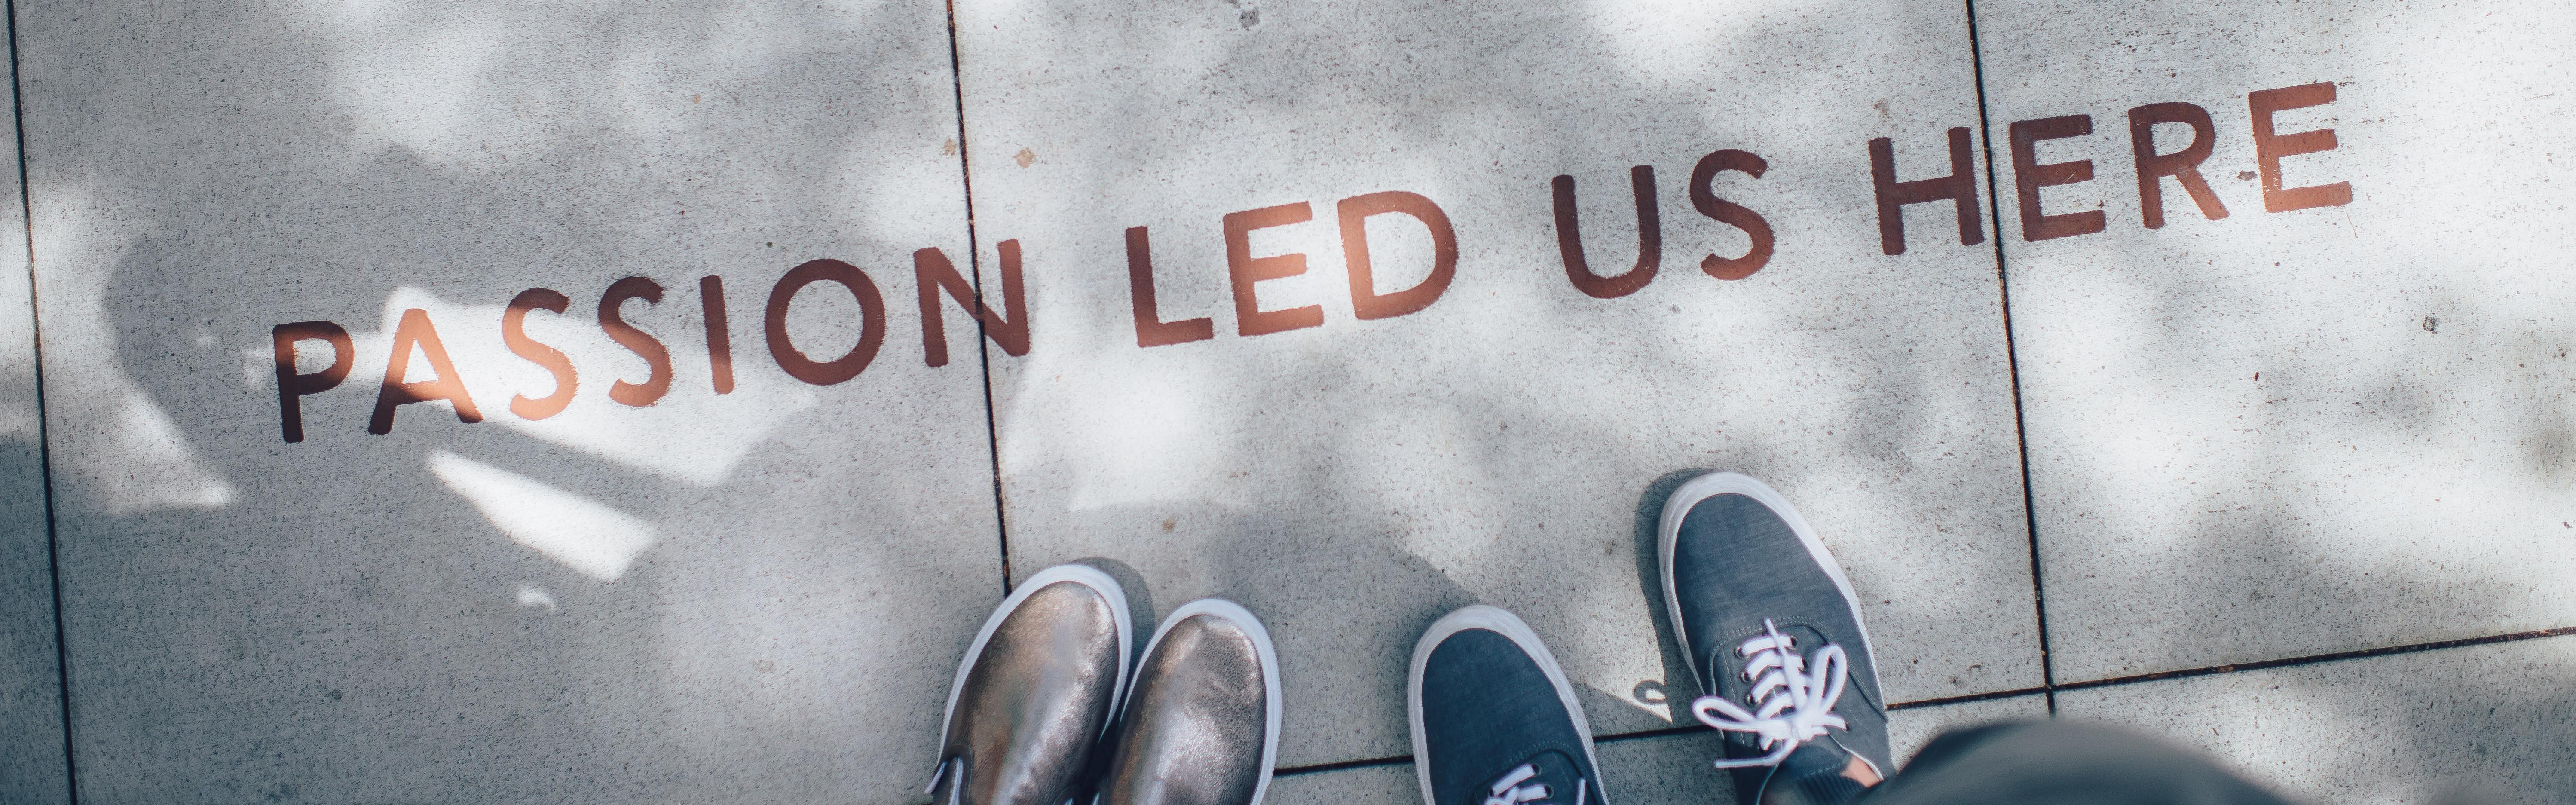 Photograph of two people's feet and concrete floor with slogan 'Passion led us here'